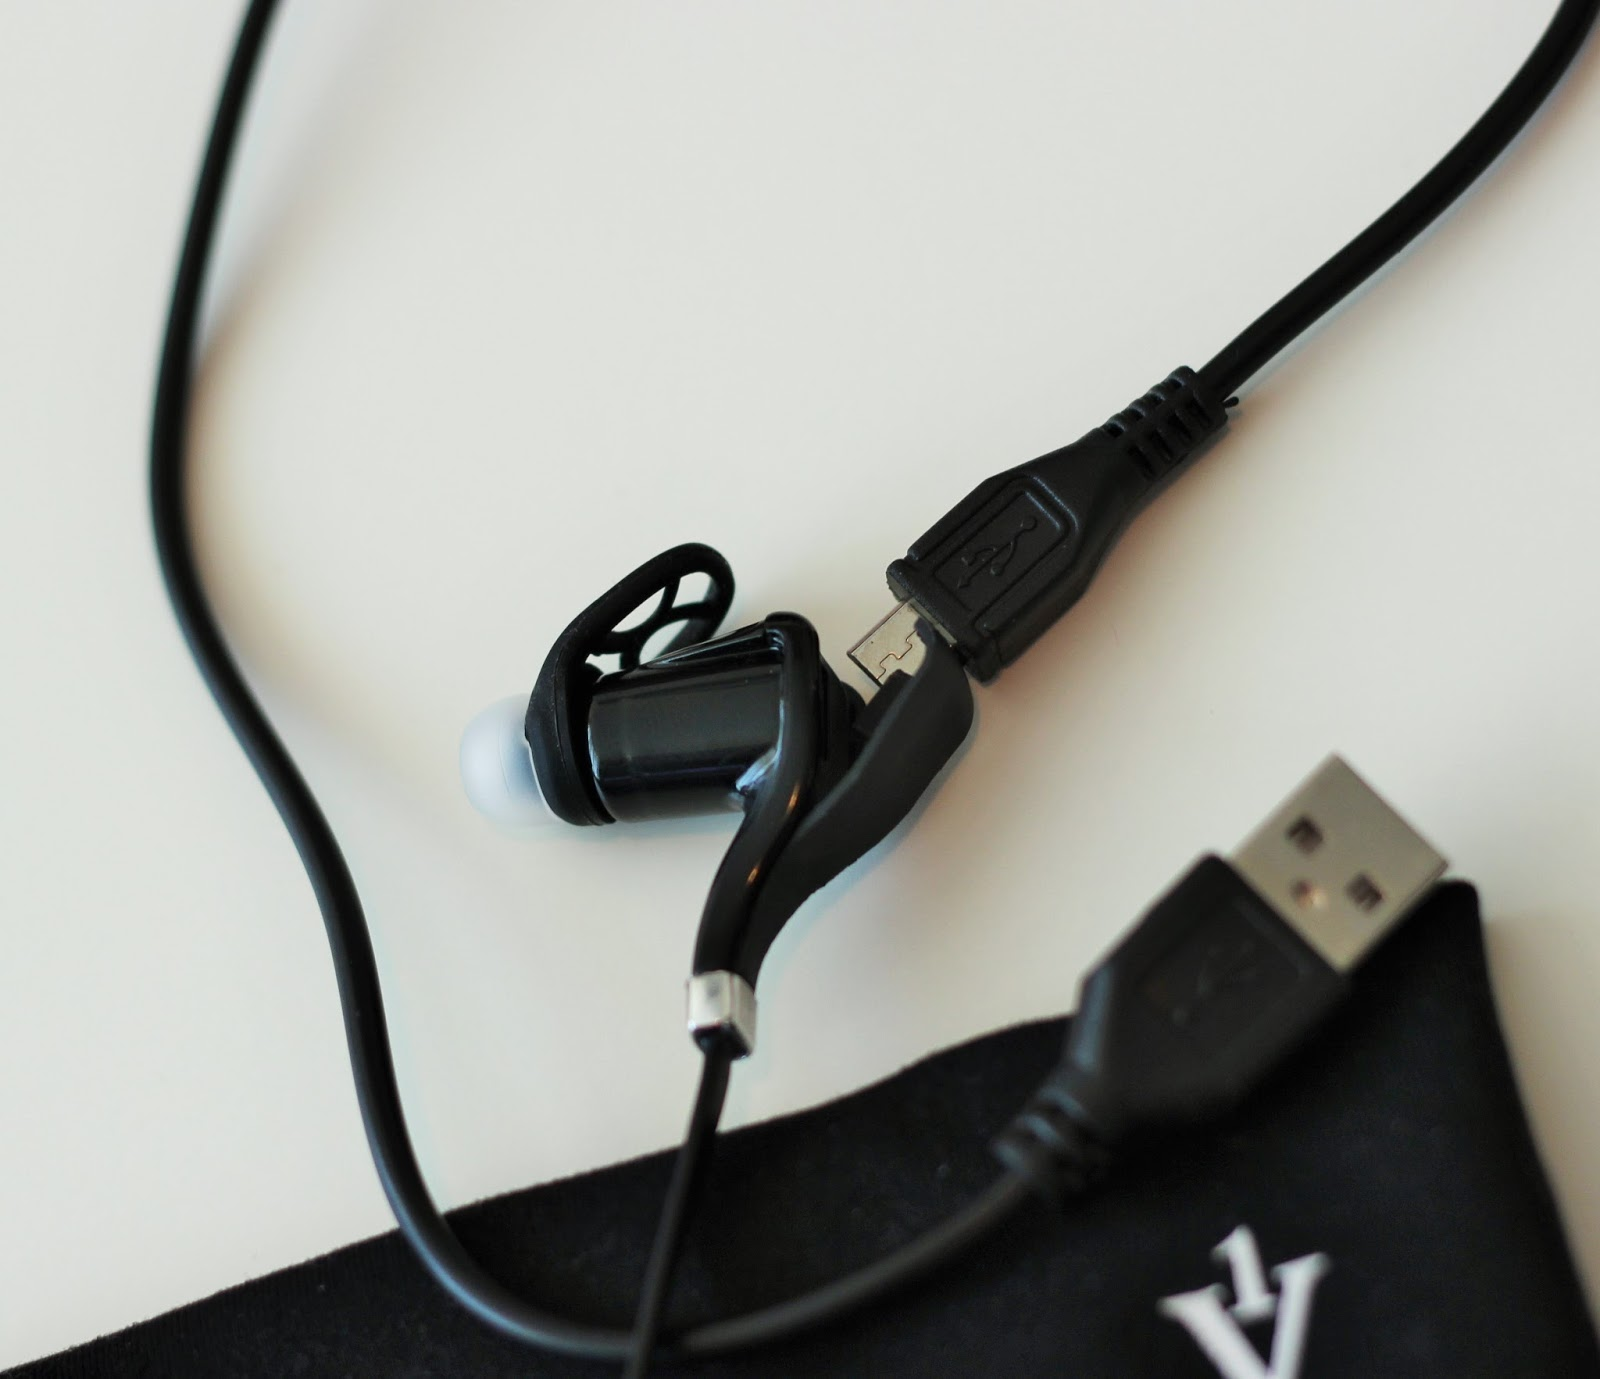 REVIEW: 1 VOICE HEADBAND WITH BUILT-IN WIRELESS EARBUDS